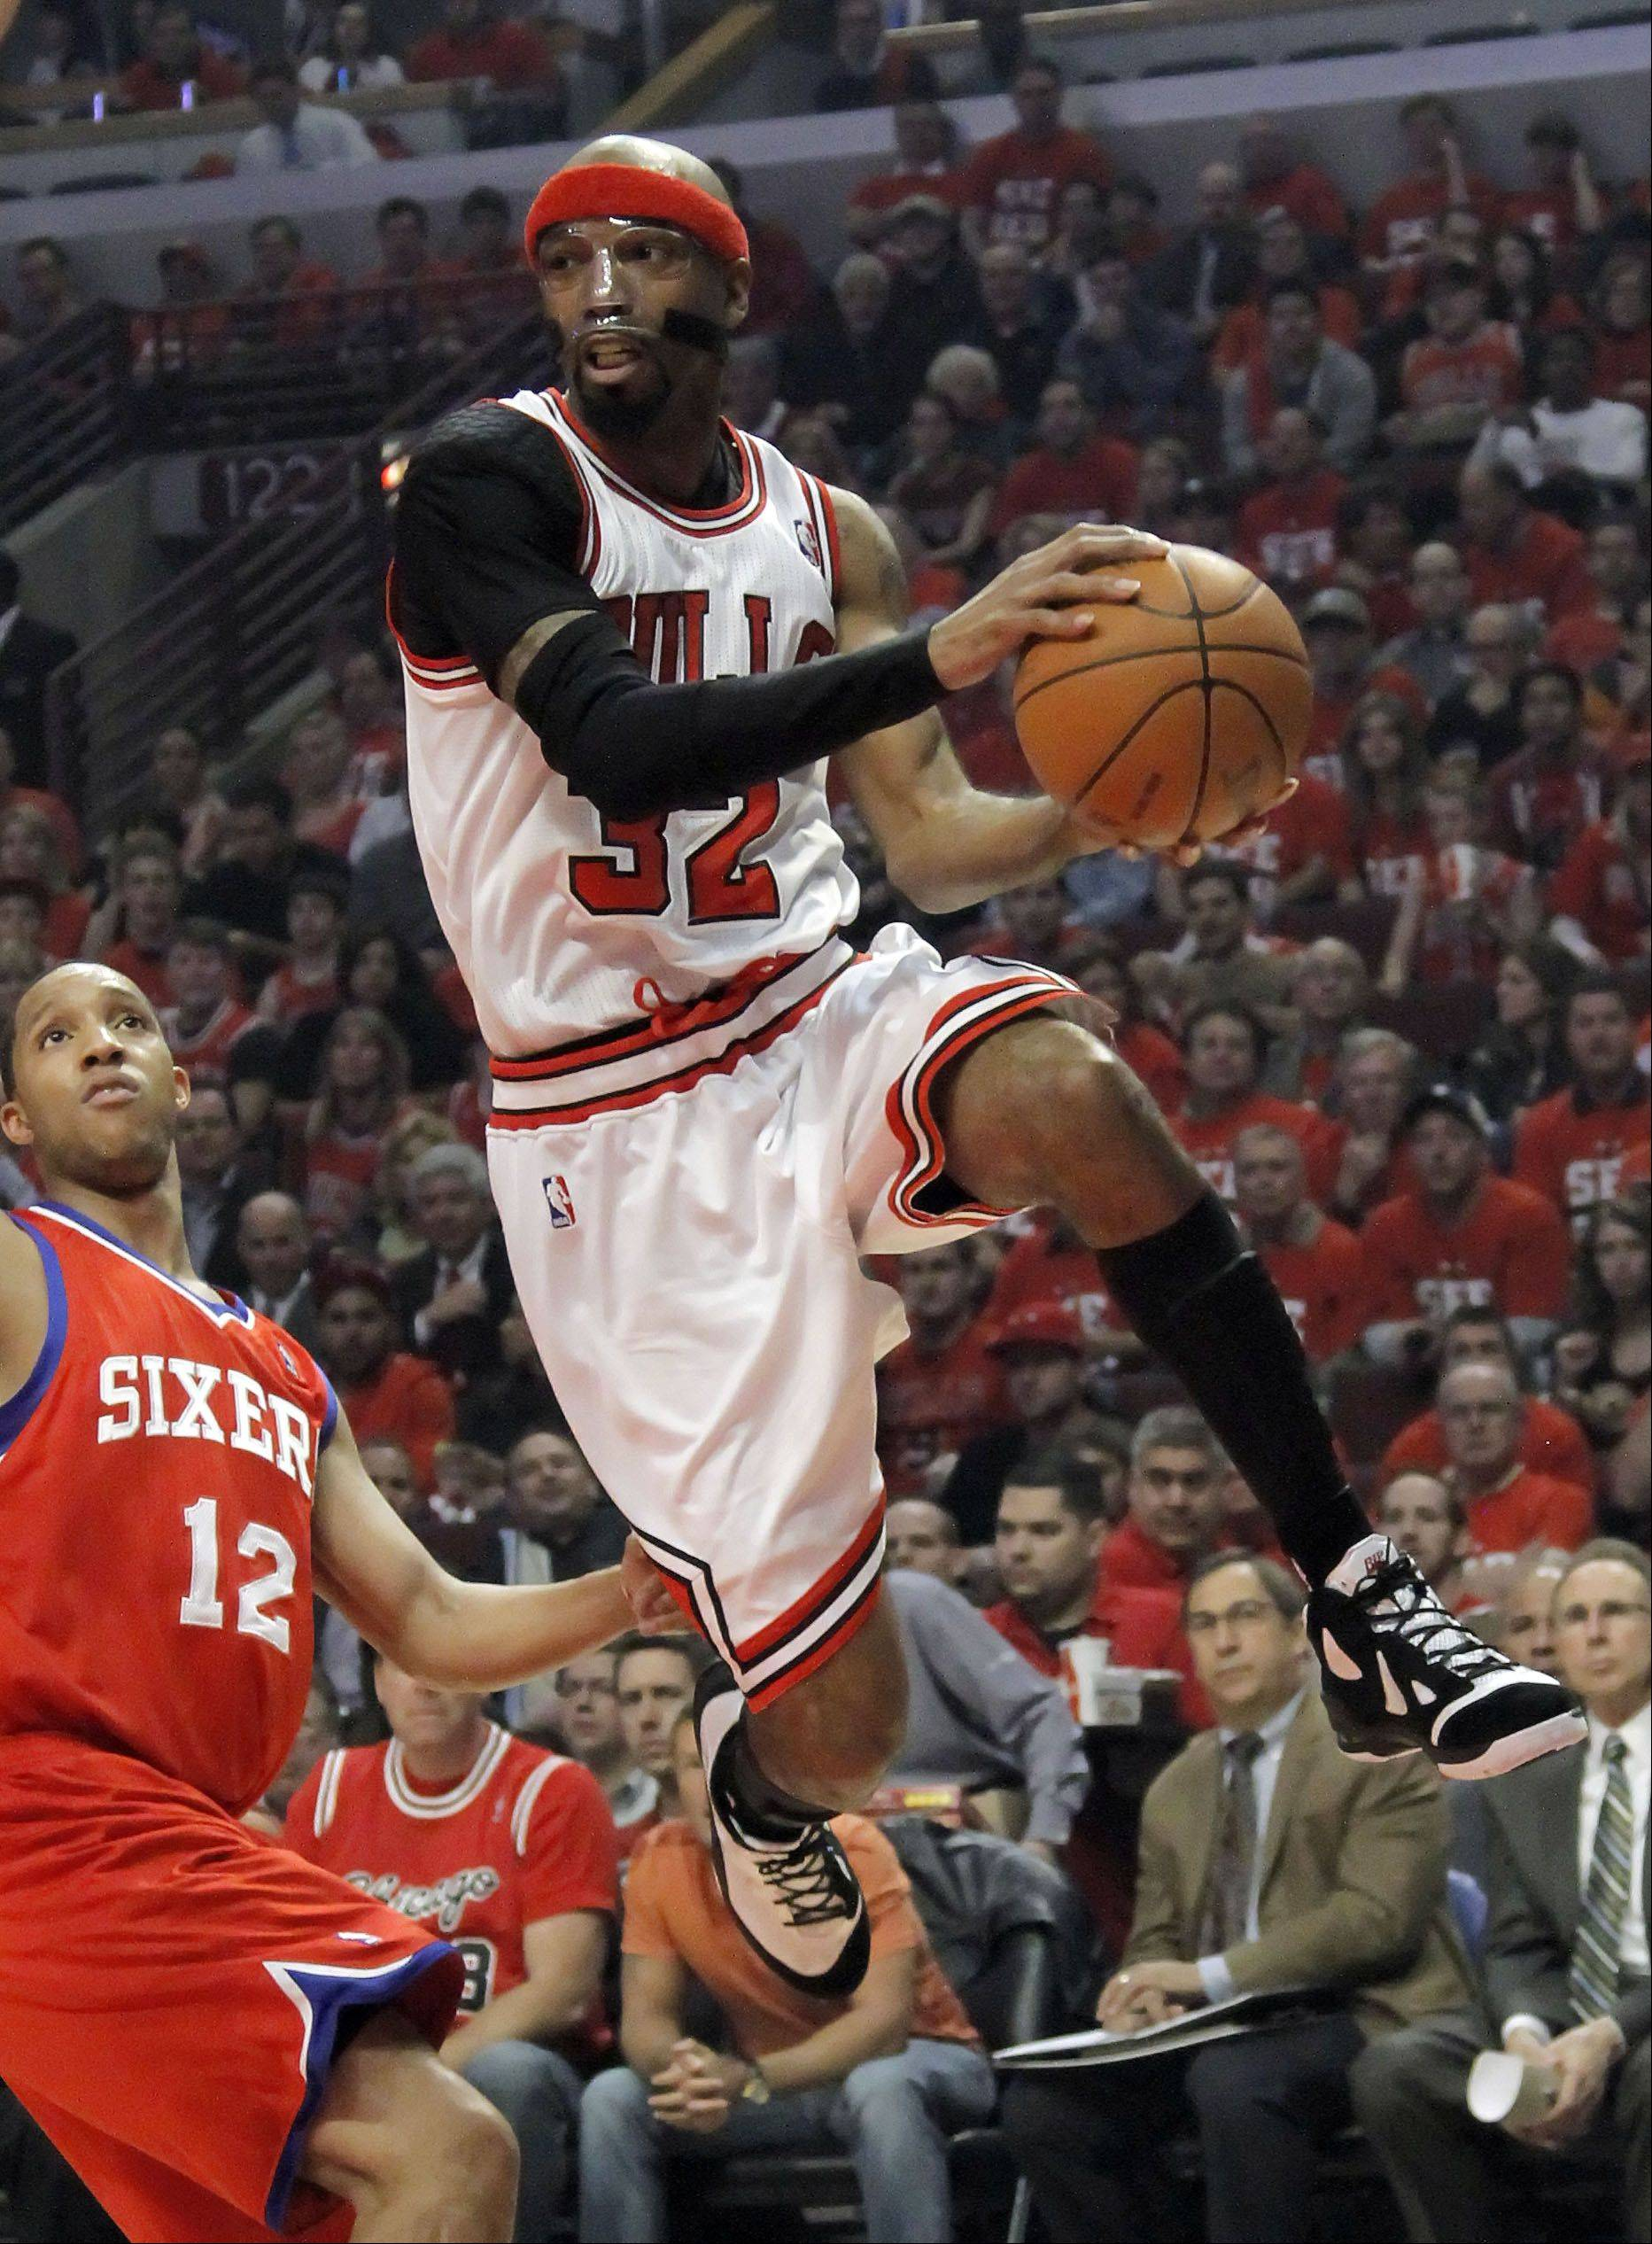 Chicago Bulls' Richard Hamilton drives to the hoop.